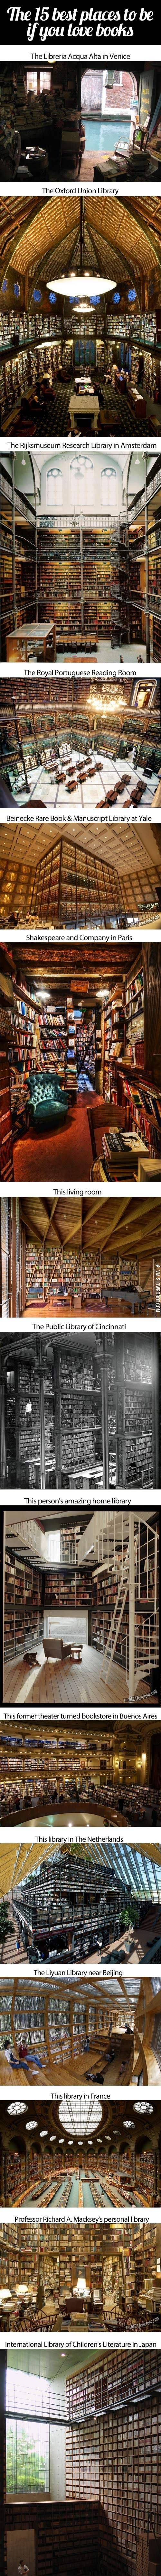 For all the book lovers.